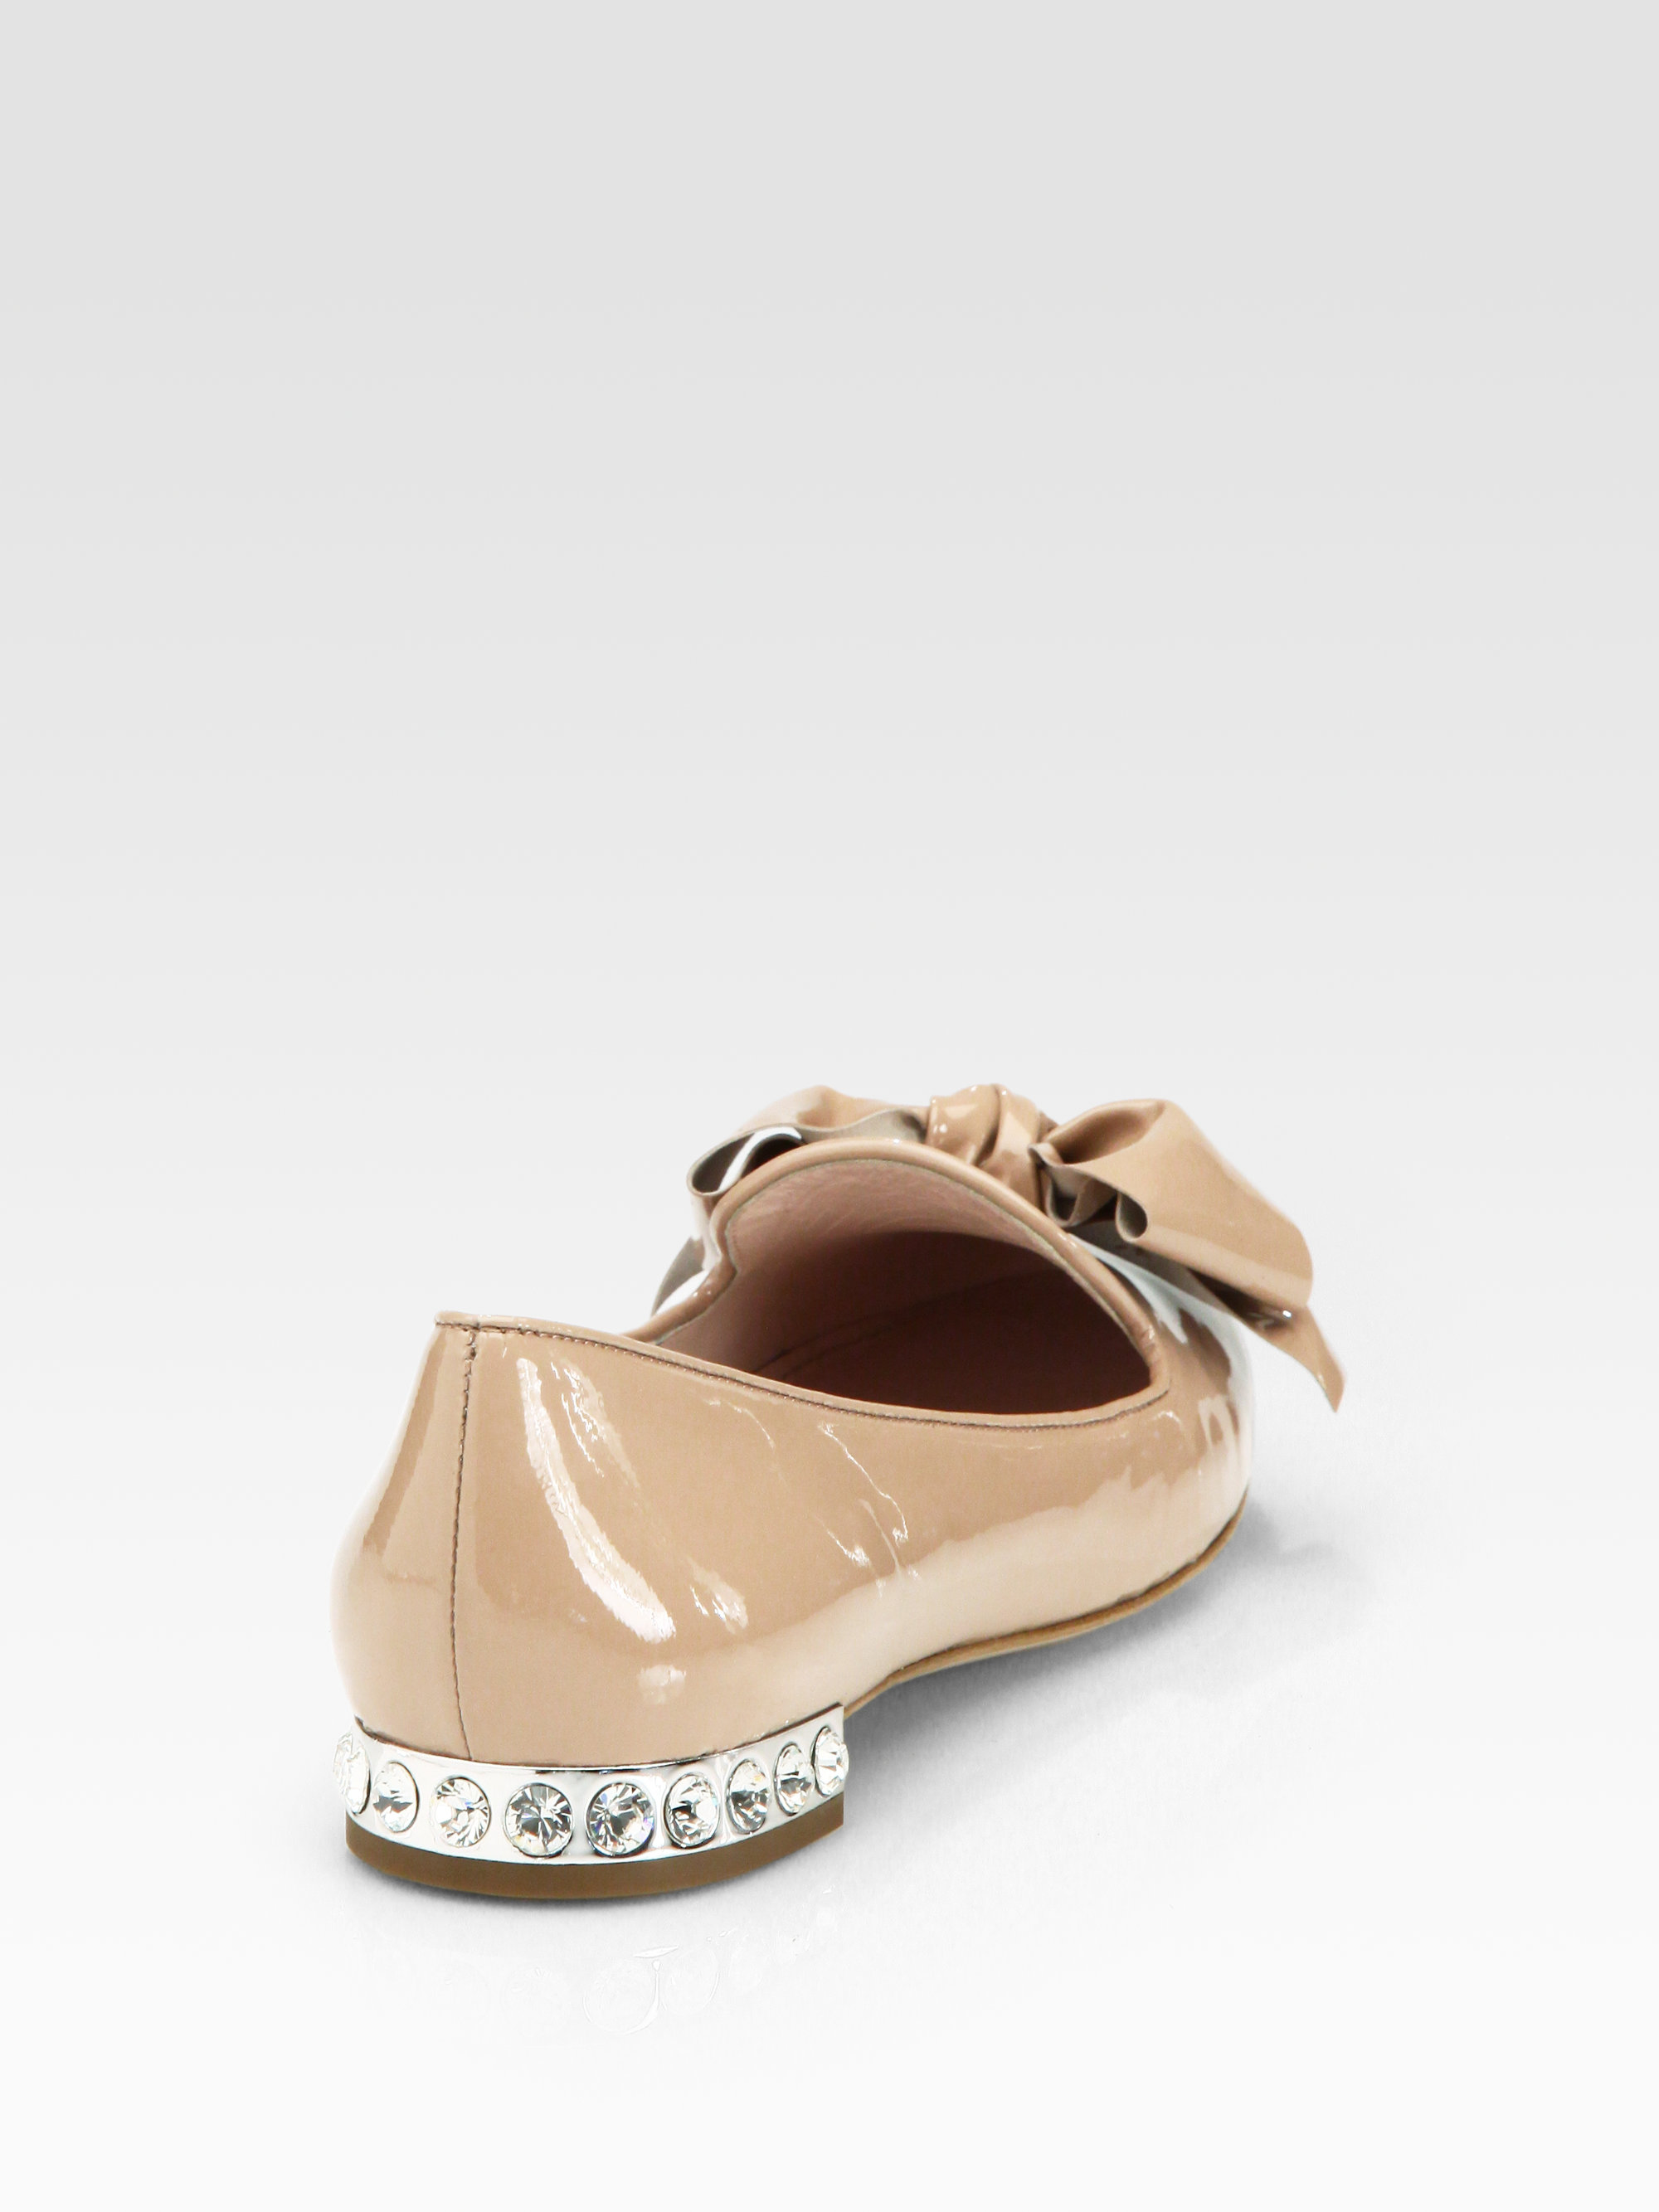 Miu Miu Patent Leather Jewel-Embellished Flats many kinds of for sale clearance limited edition extremely online cheap sale shopping online clearance good selling EQbmSx0B